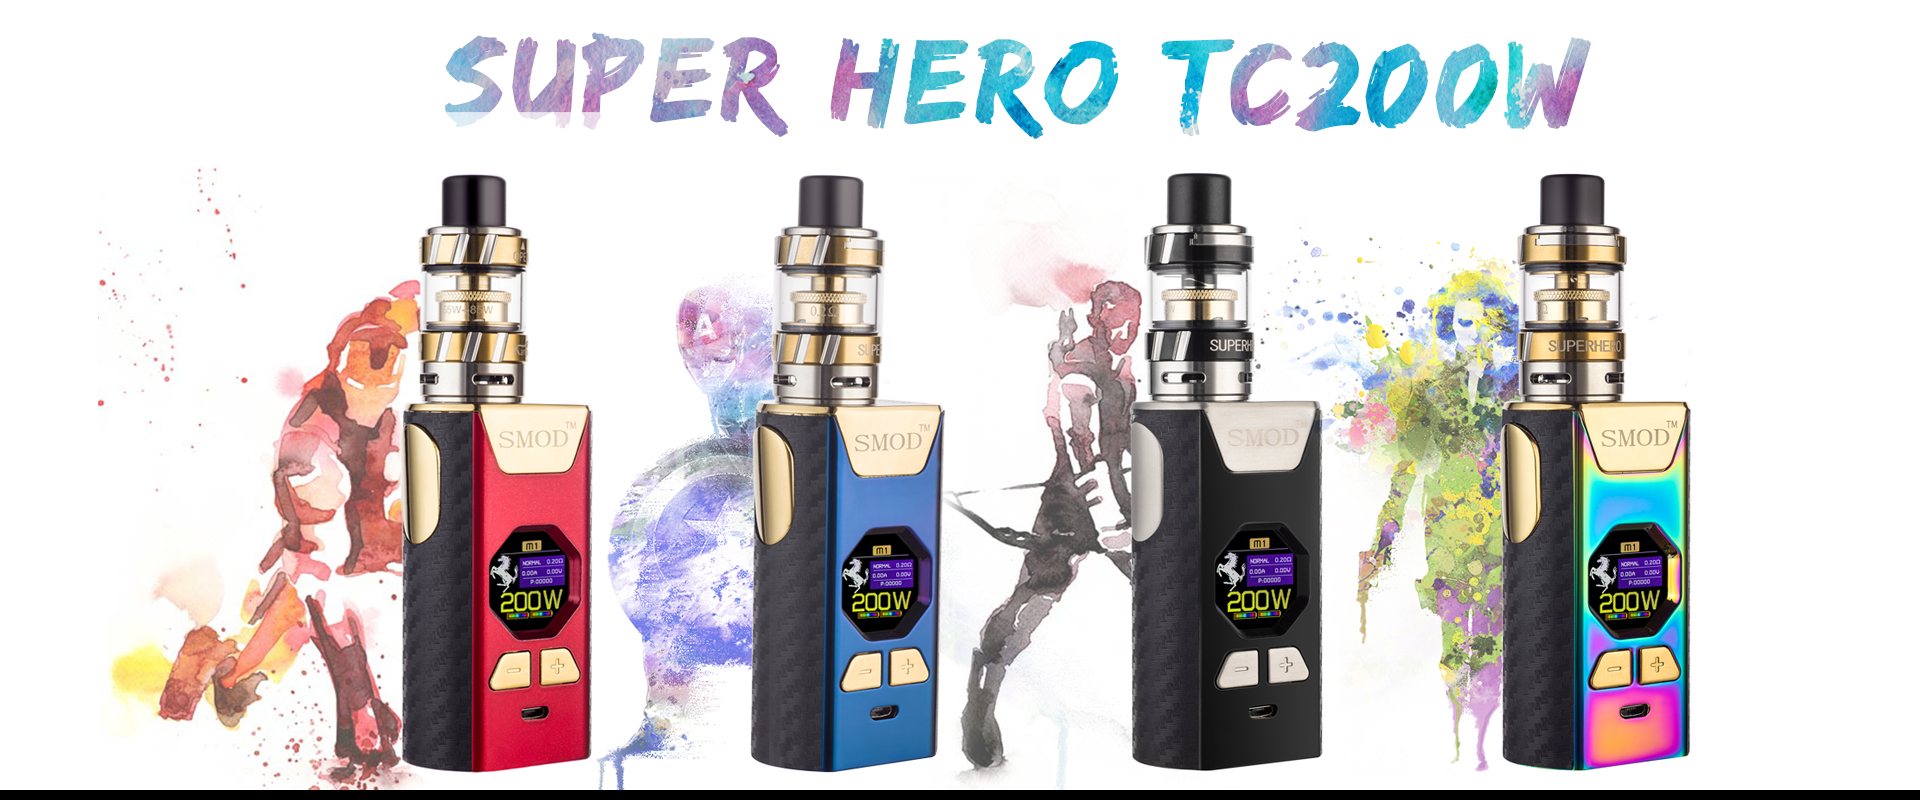 Kangvape SuperheroTC 200W genuine host high power steam smoke quit smoking electronic cigarette smart color screen